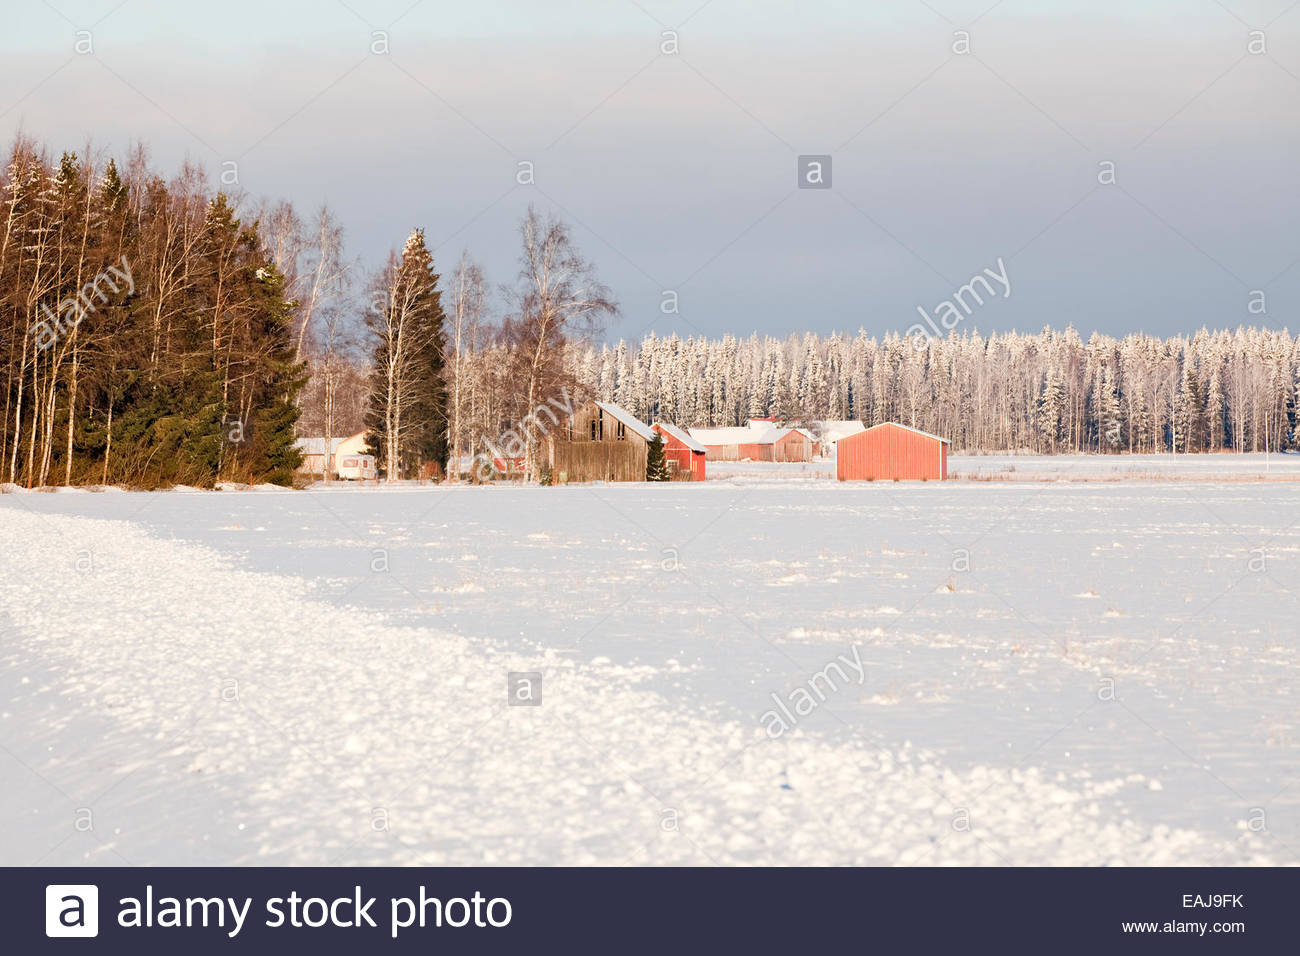 Rural countryside in Finland at winter - Stock Image